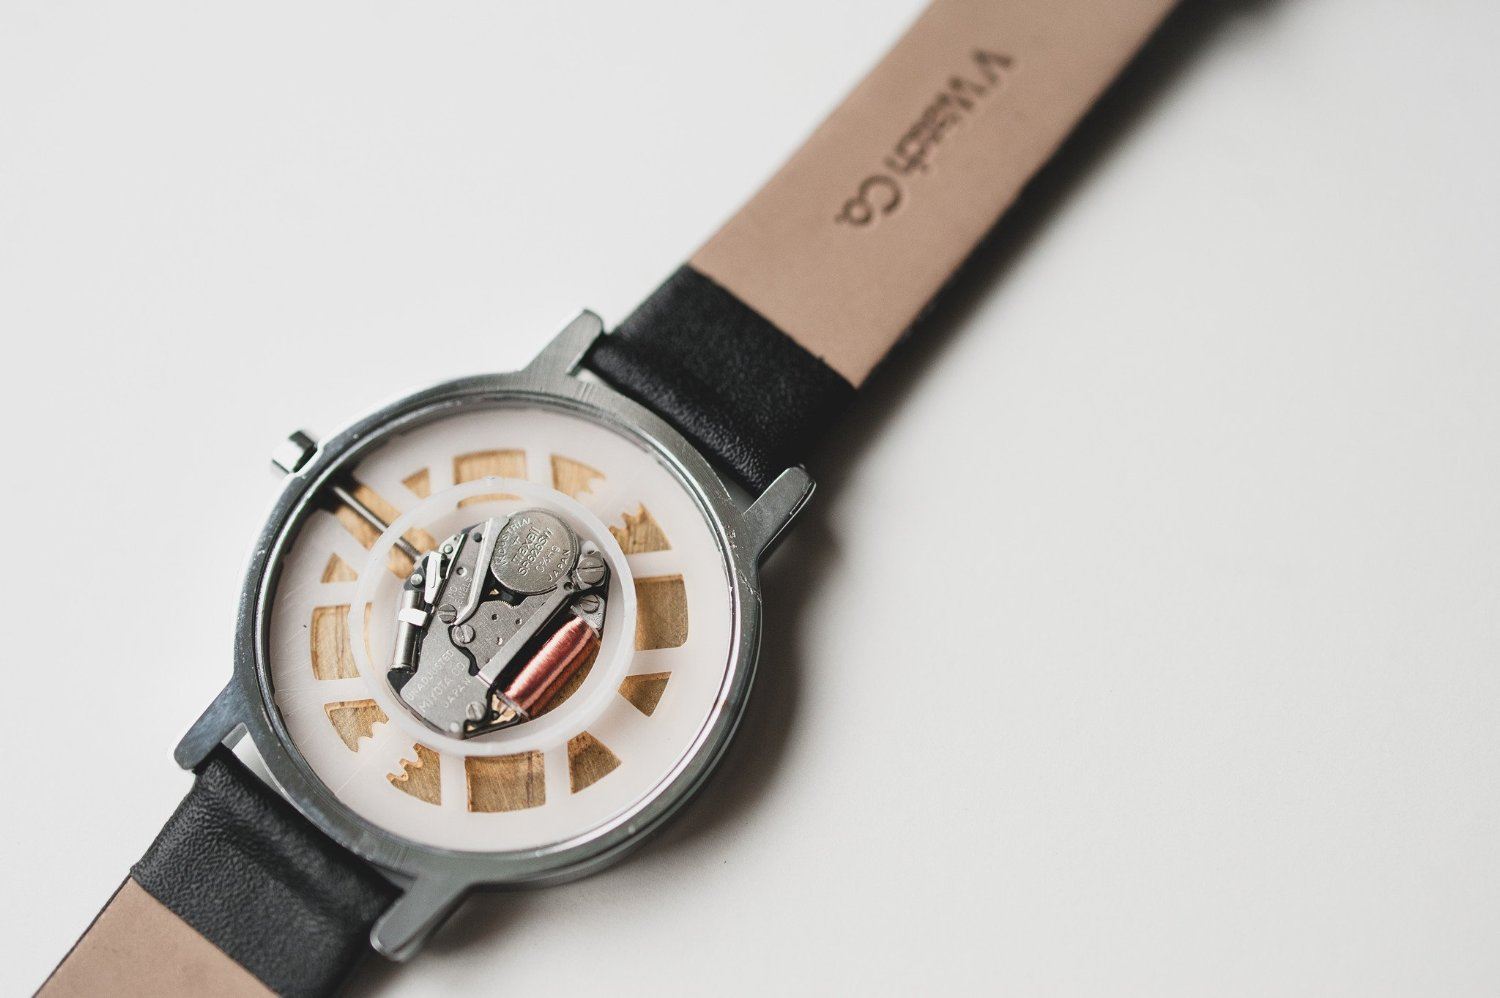 V WATCH CO. / White dial - HODINA